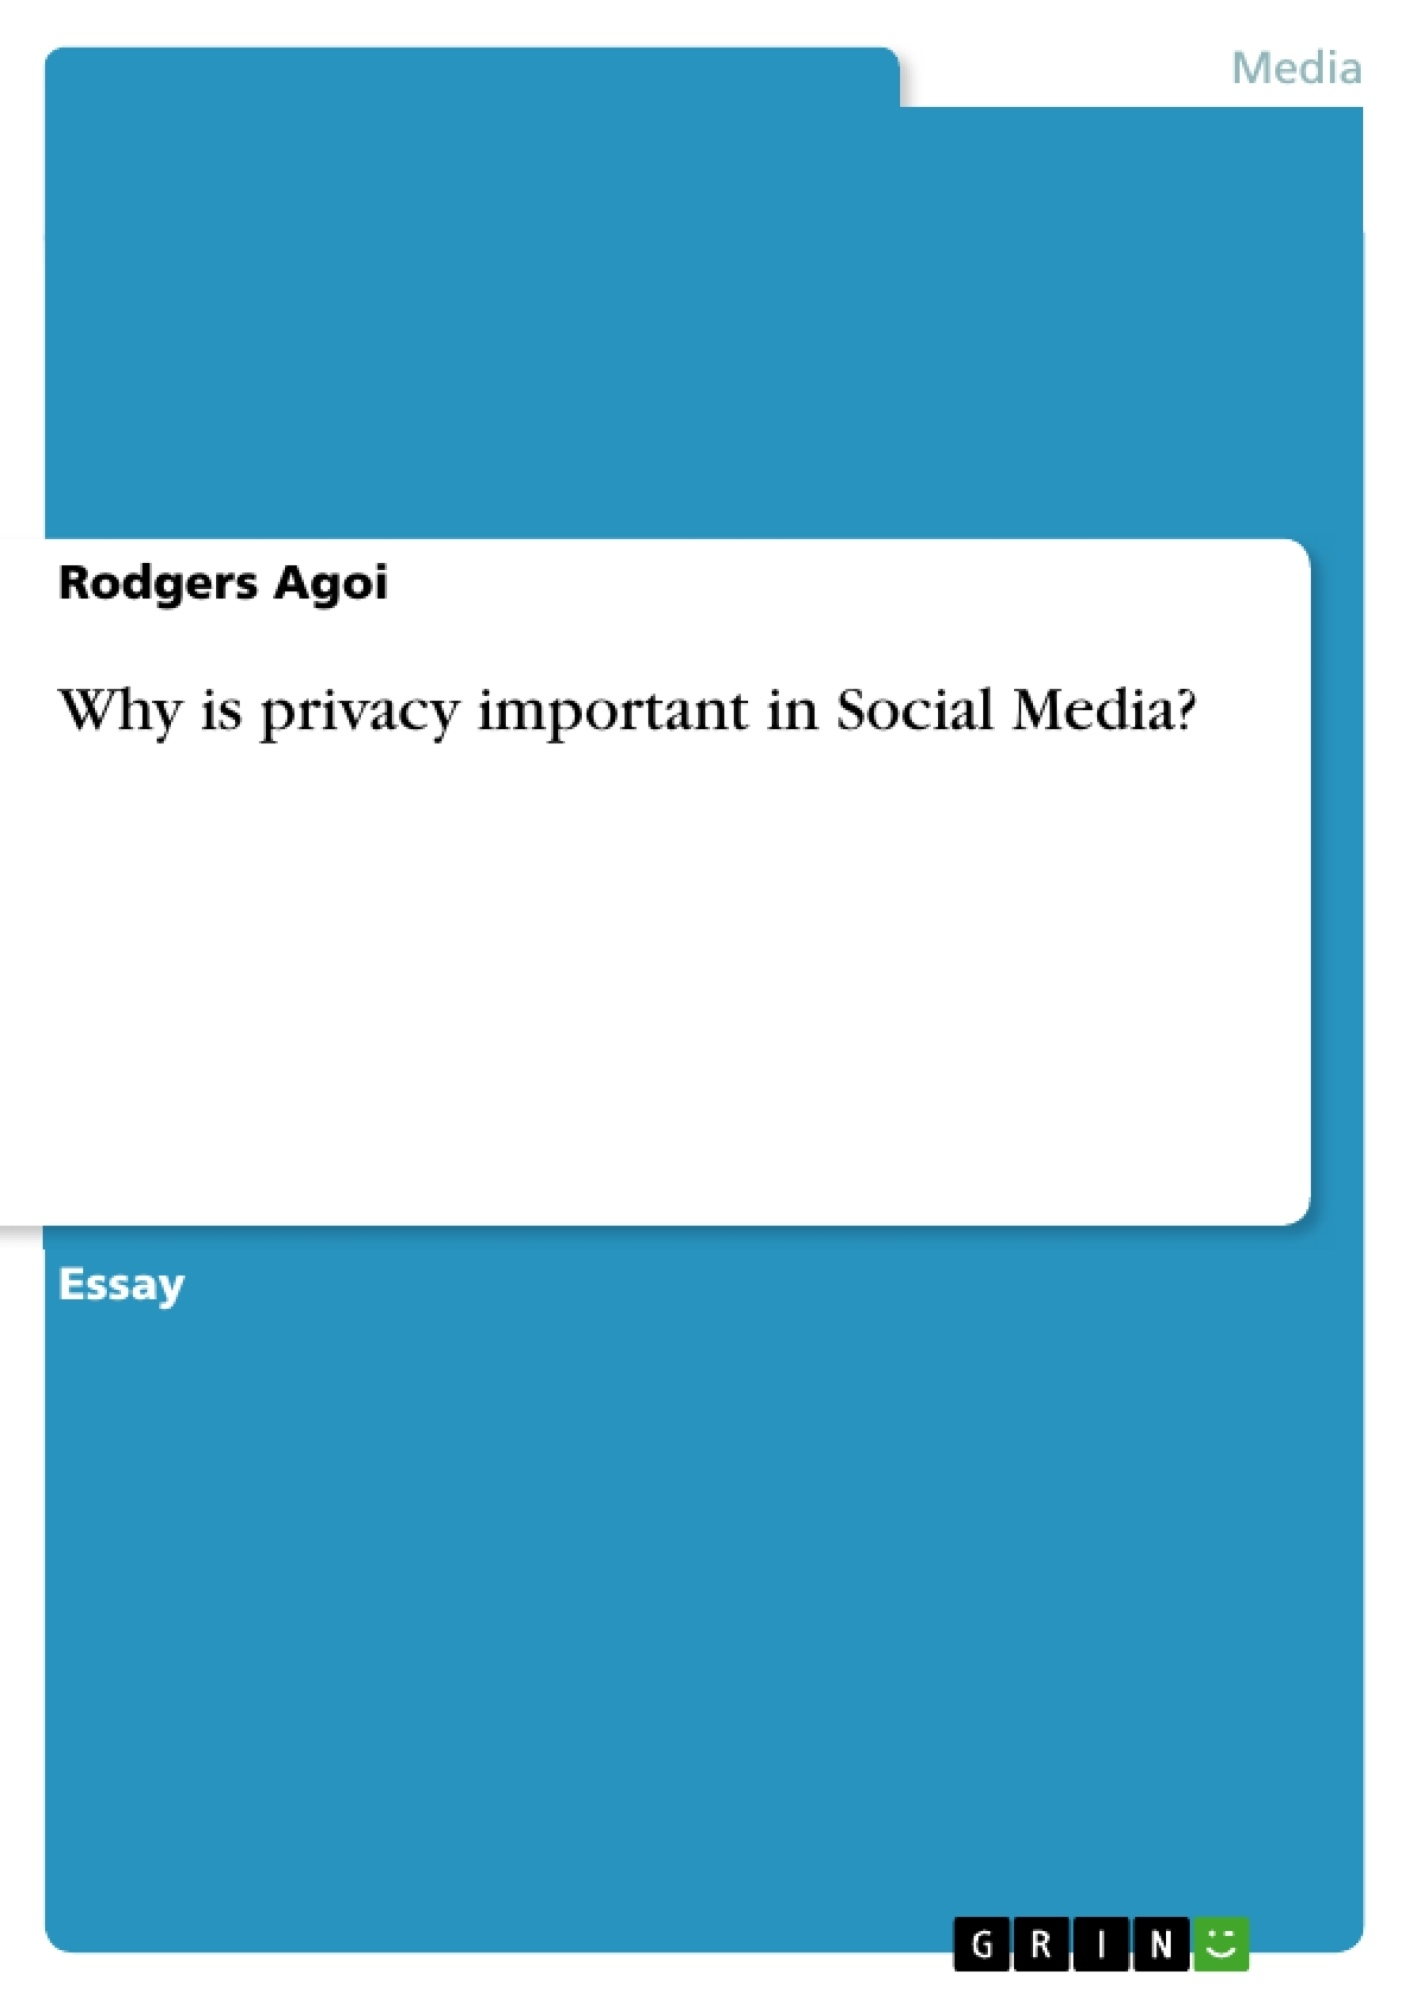 Title: Why is privacy important in Social Media?